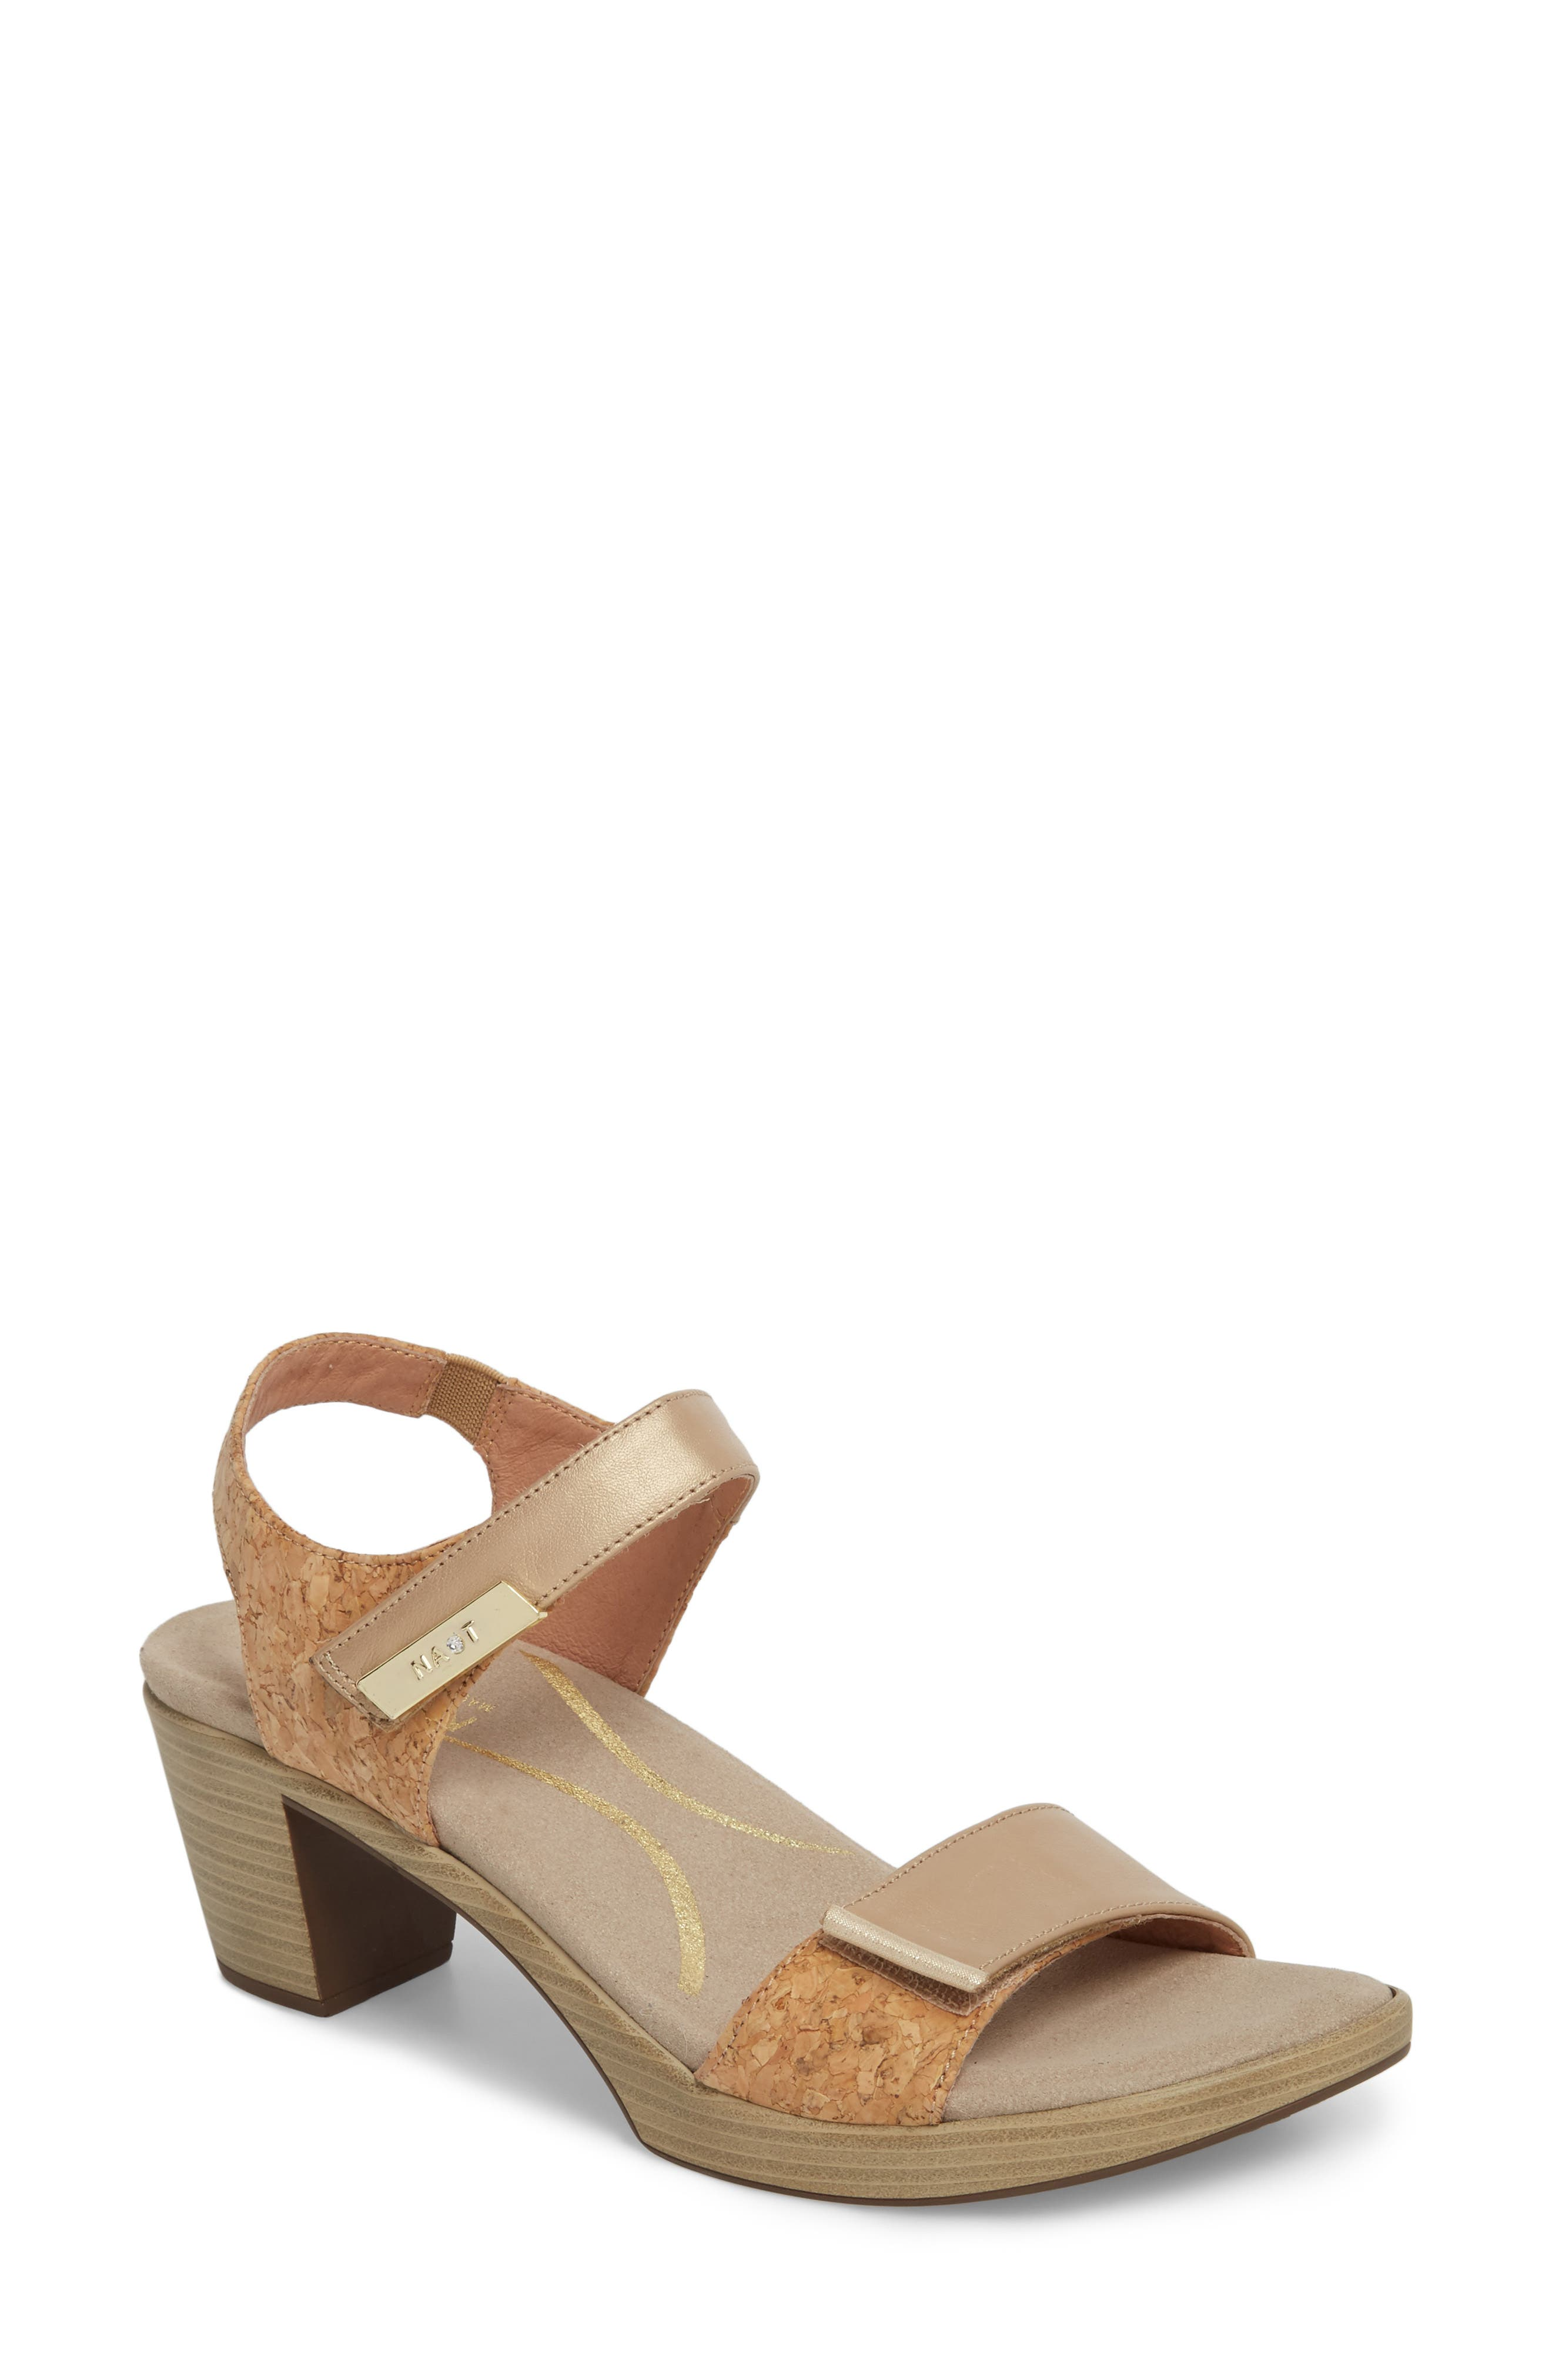 NAOT, 'Intact' Sandal, Main thumbnail 1, color, CHAMPAGNE LEATHER